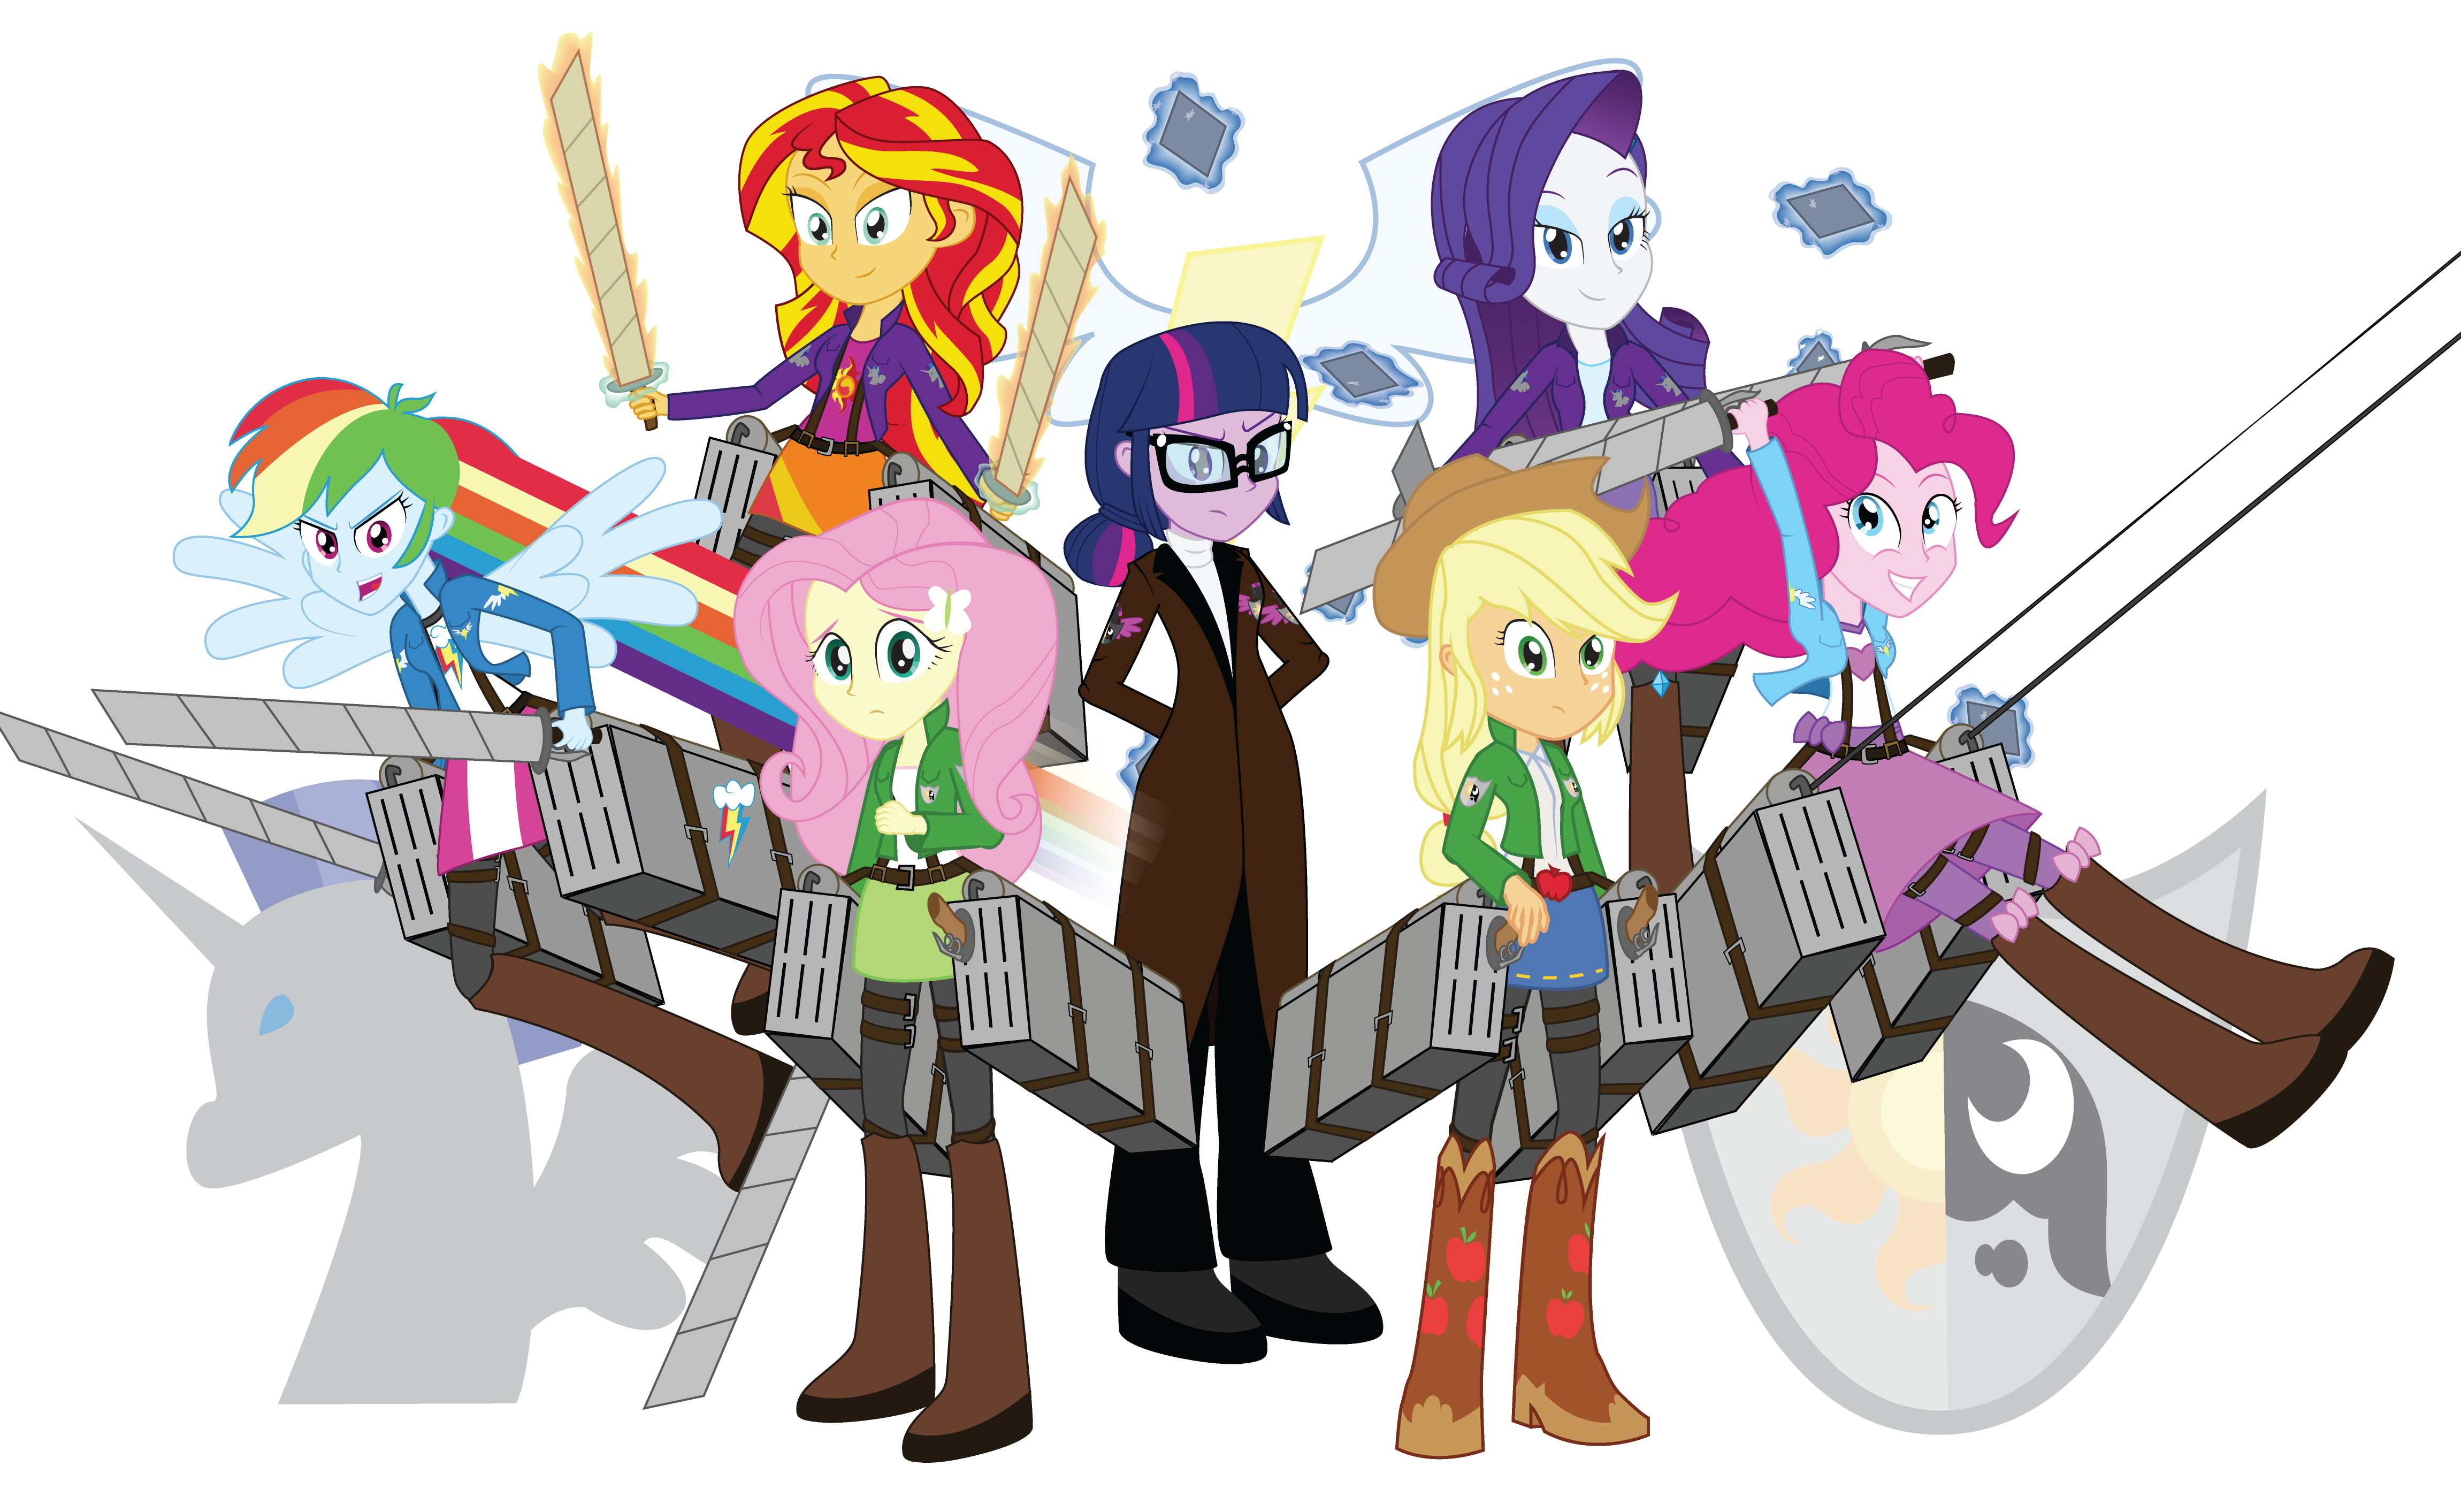 Attack on Equine: The Mane 7 by Amante56 on DeviantArt